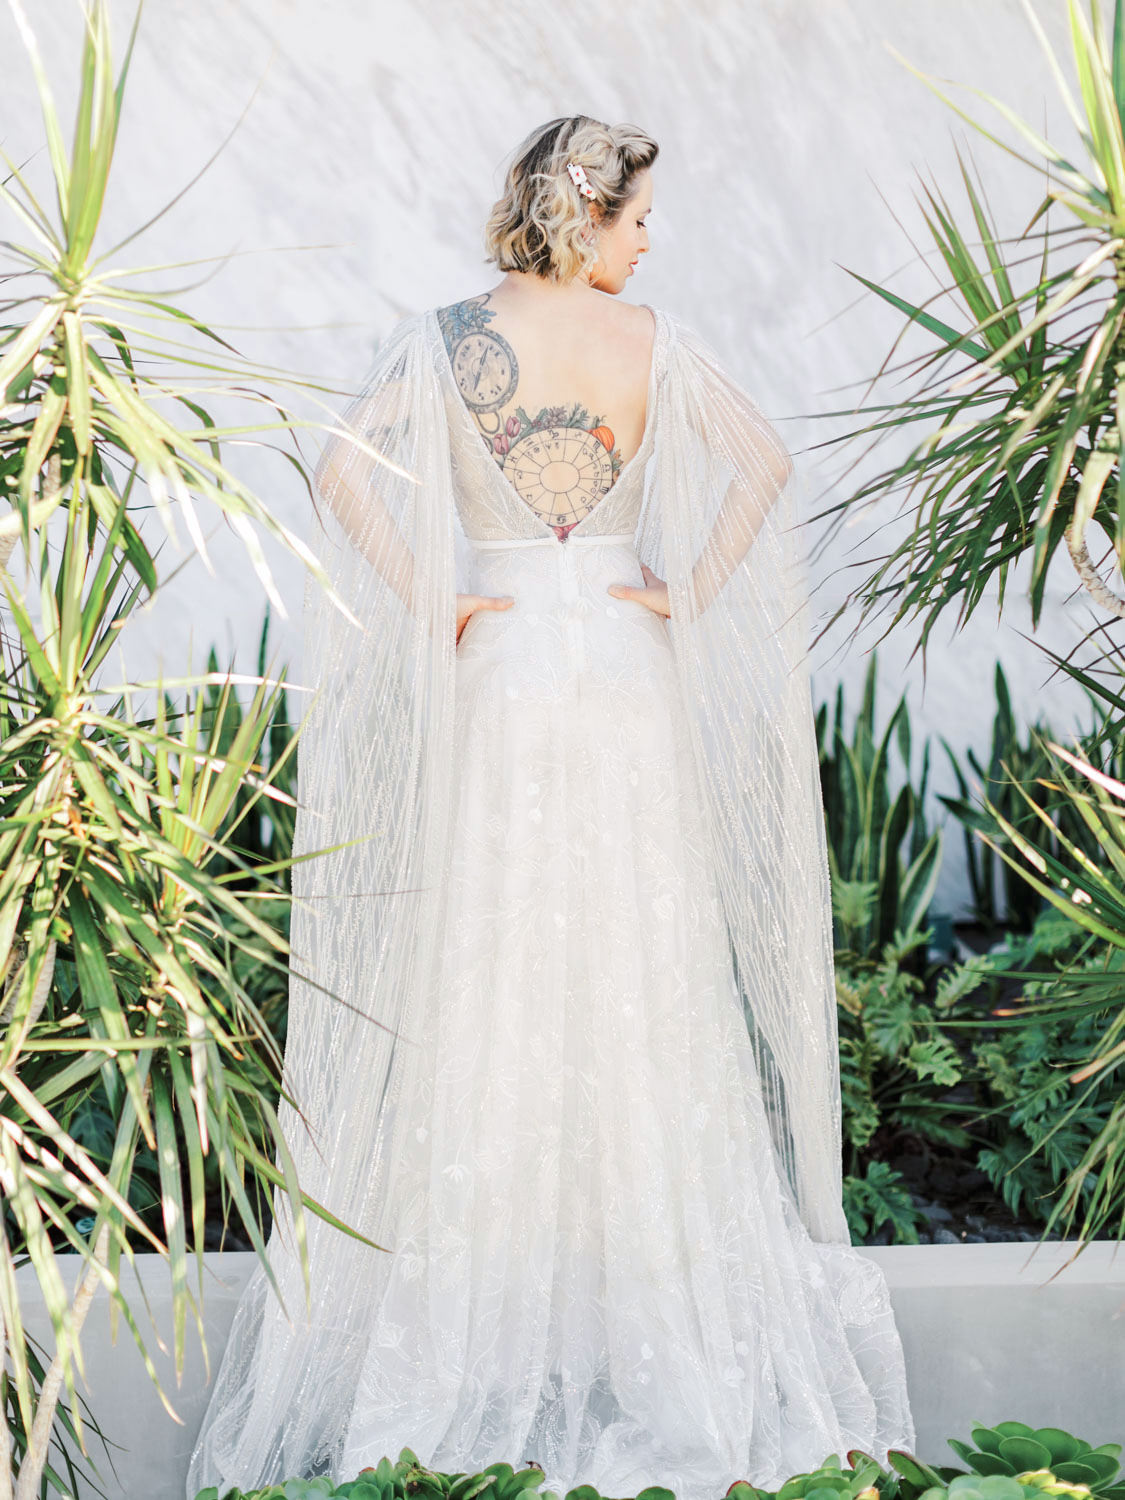 Neta Dover Camila - A Luxury Wedding Dress with cape sleeves and floral beading. Cavin Elizabeth Photography